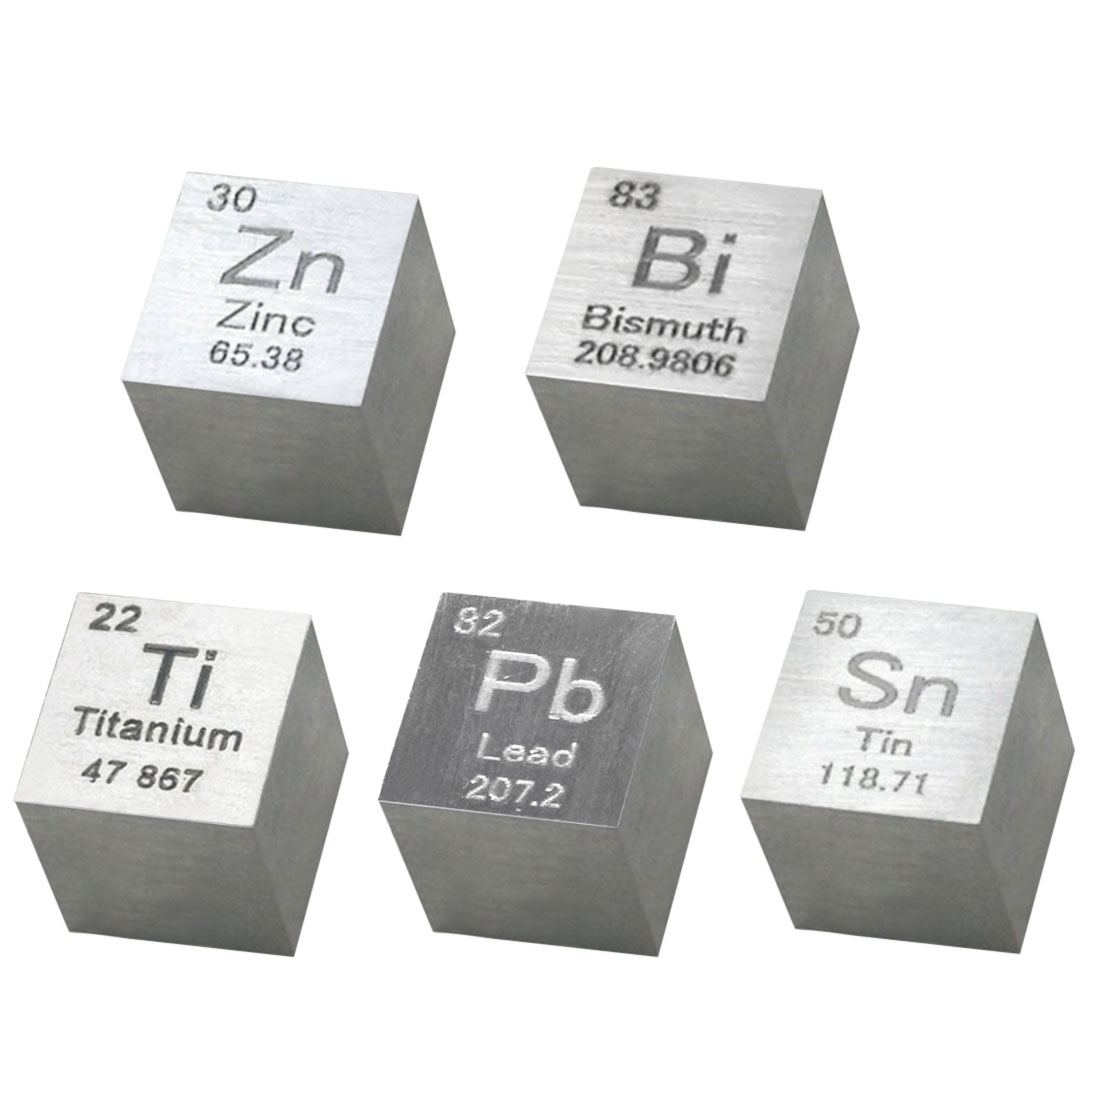 10 X 10 X 10mm Wiredrawing Stannum Bismuth Zinc Plumbum Titanium Cube Set Periodic Table  Chemical Elements Collection